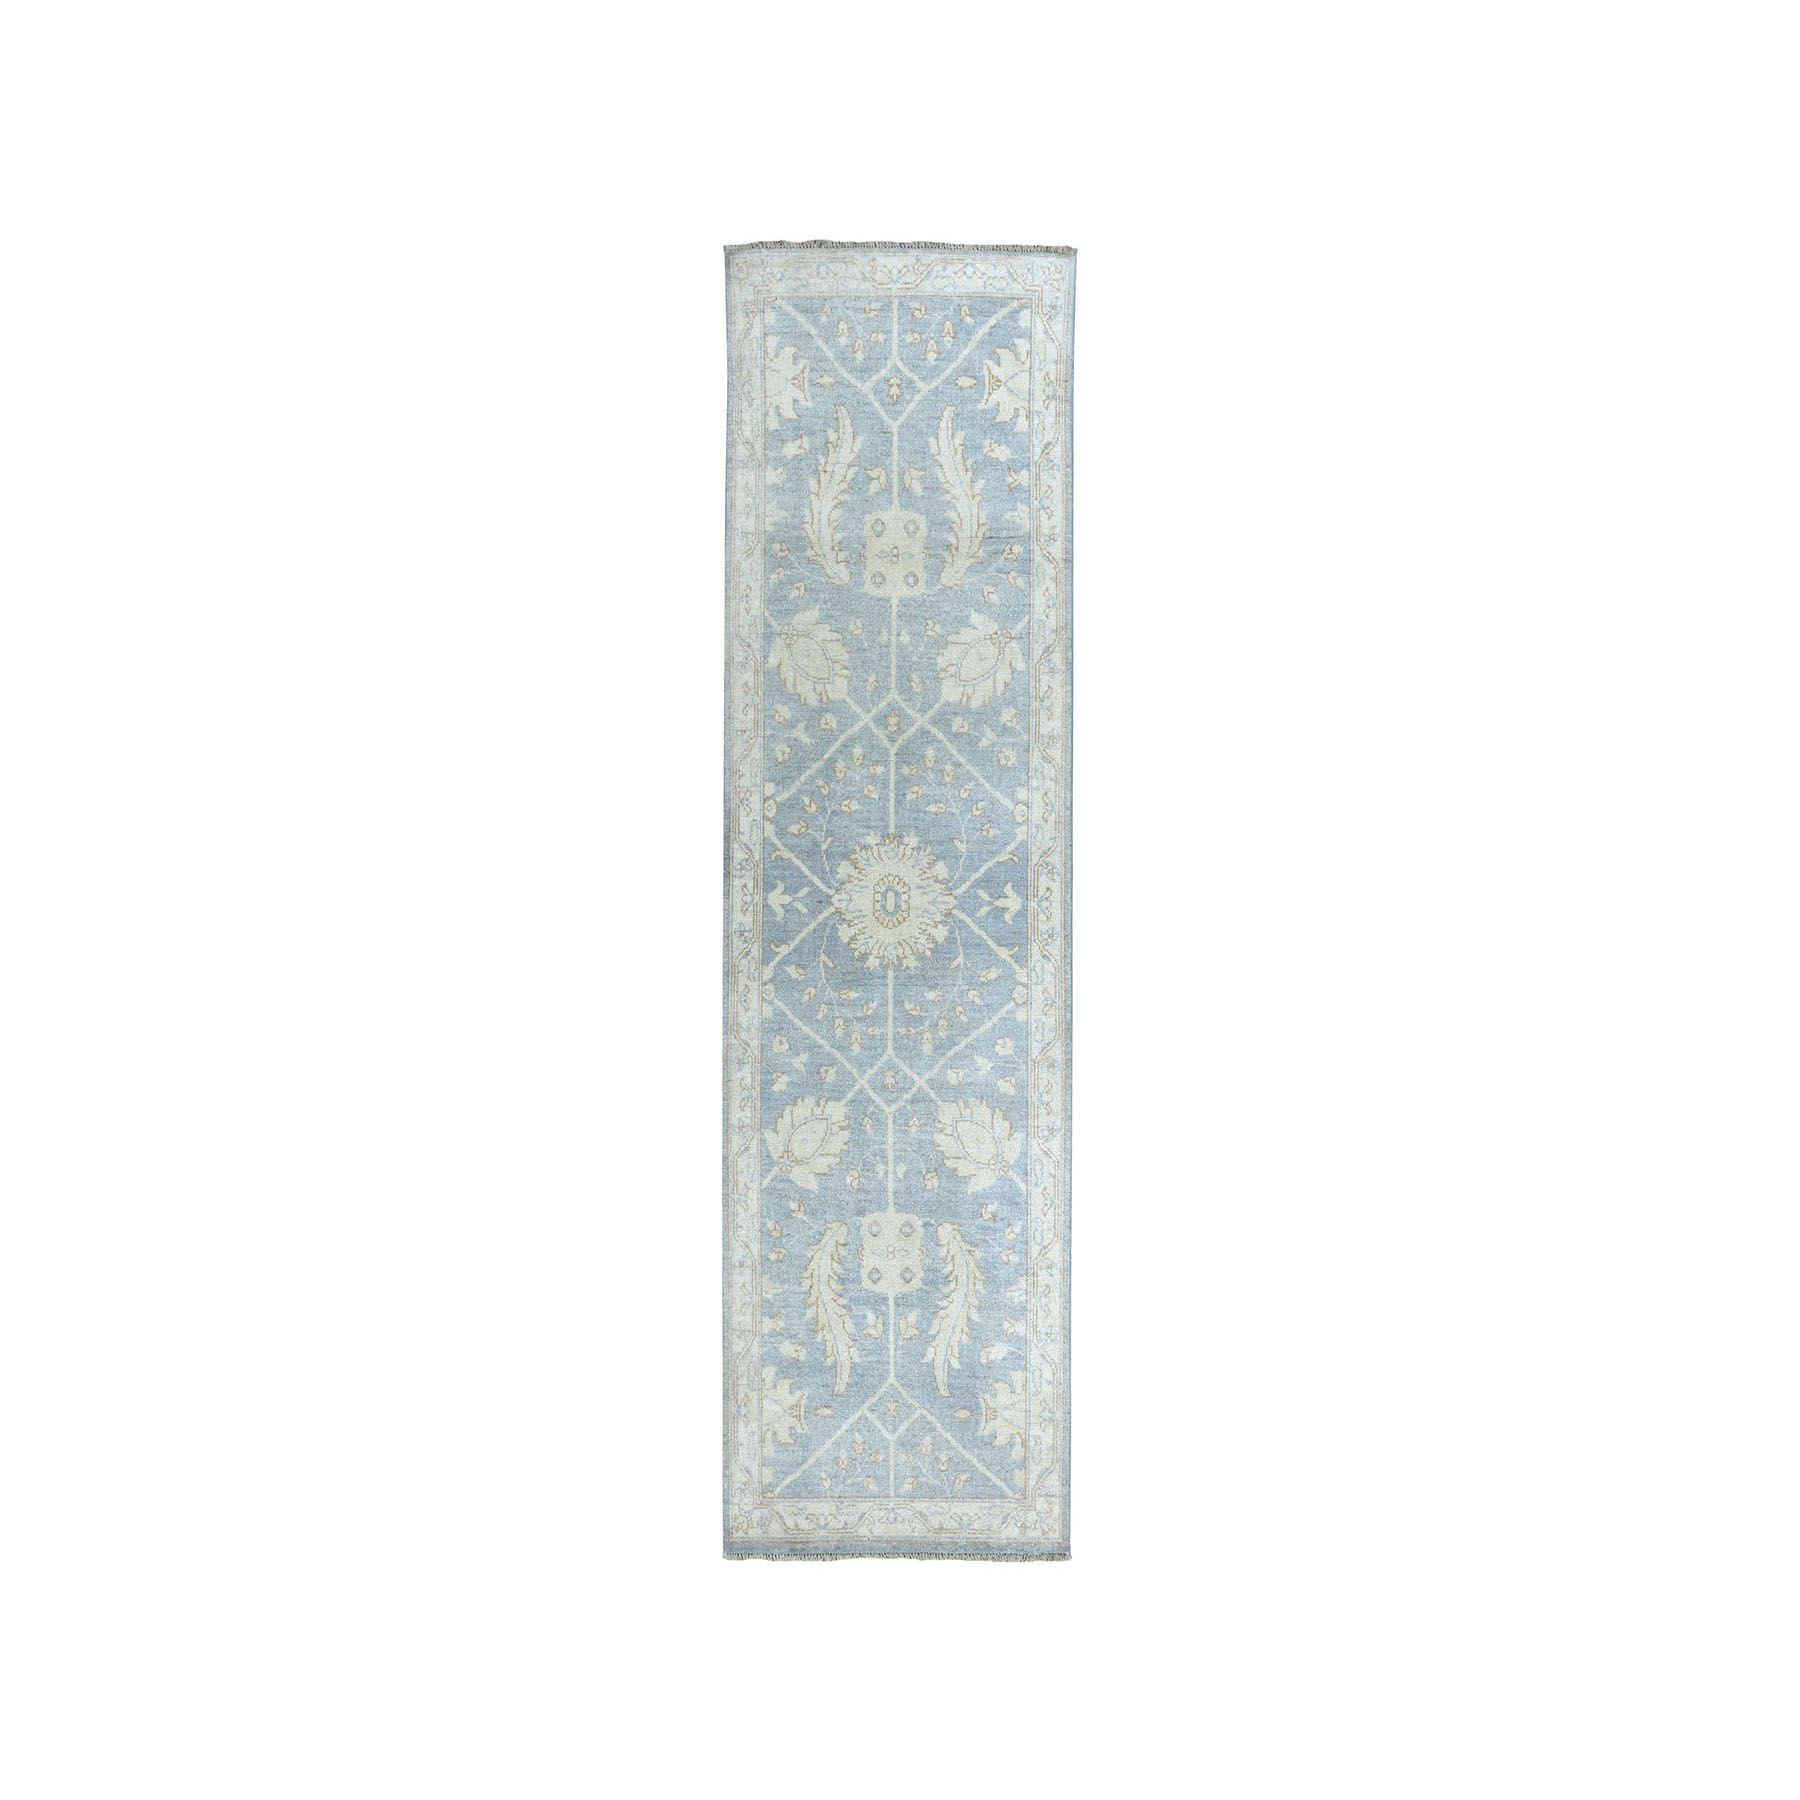 Agra And Turkish Collection Hand Knotted Grey Rug No: 01101576